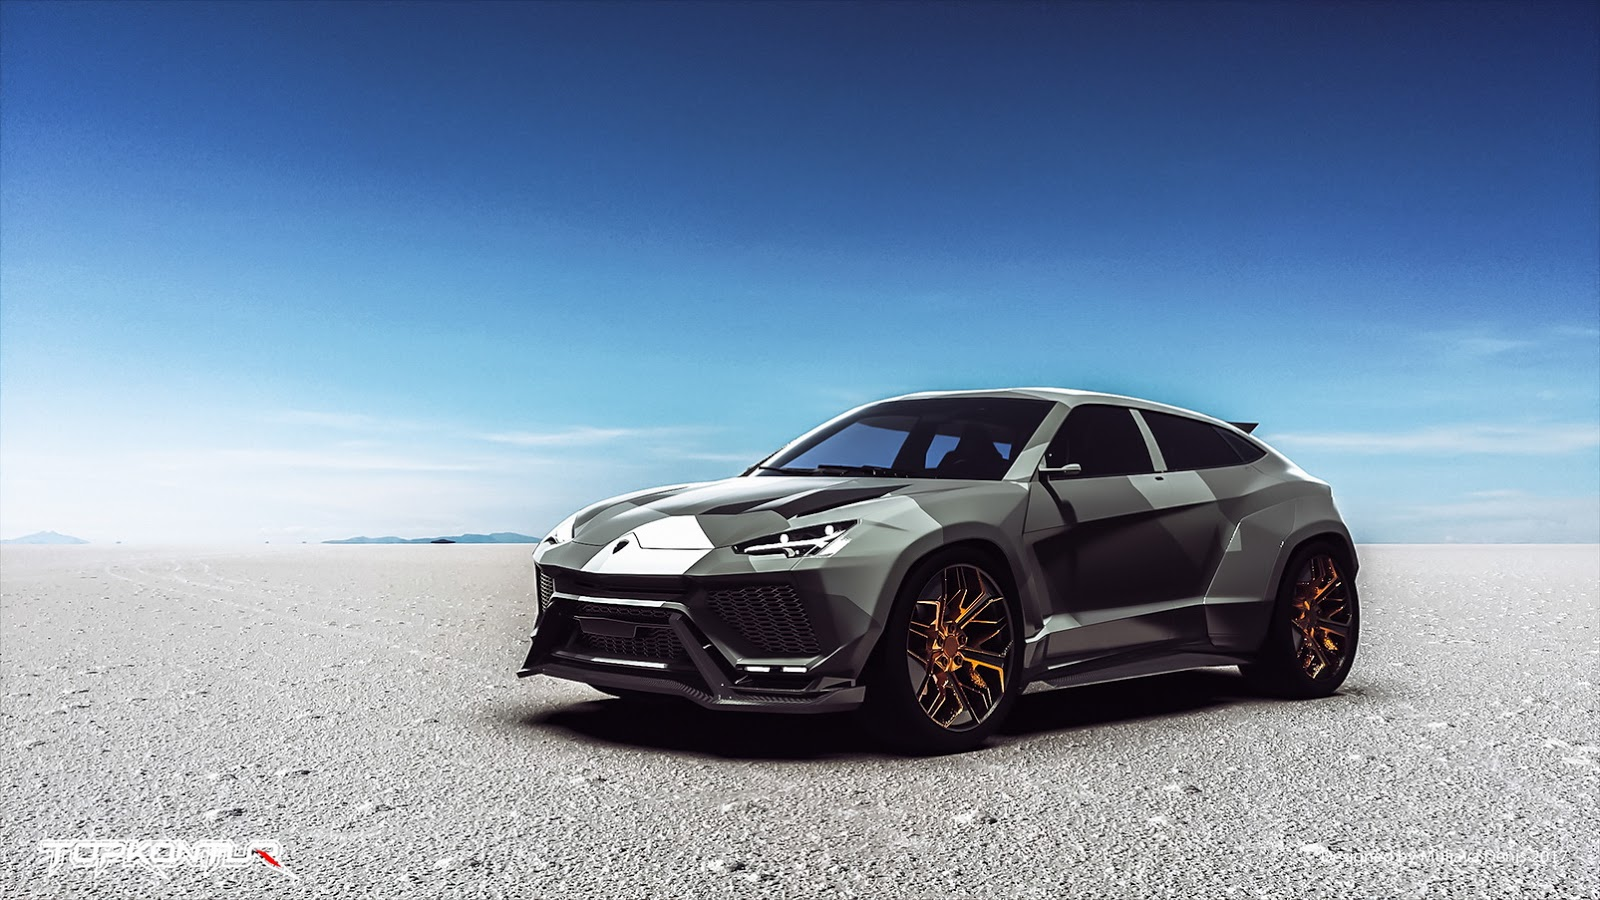 Suv Lamborghini >> Lamborghini Urus Not Even Revealed But Gets Tuning Package